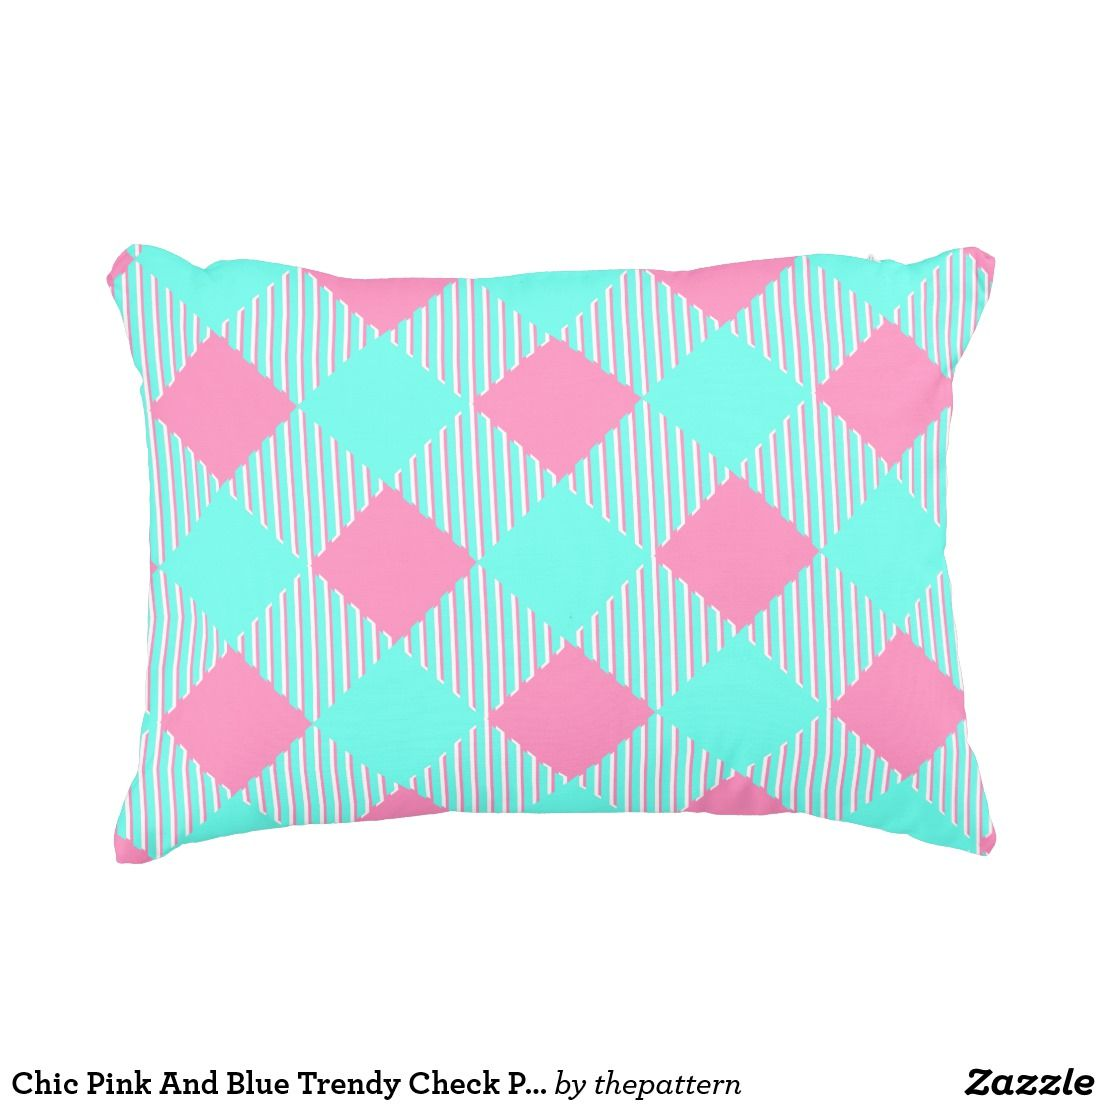 Chic pink and blue trendy check pattern decorative pillow in